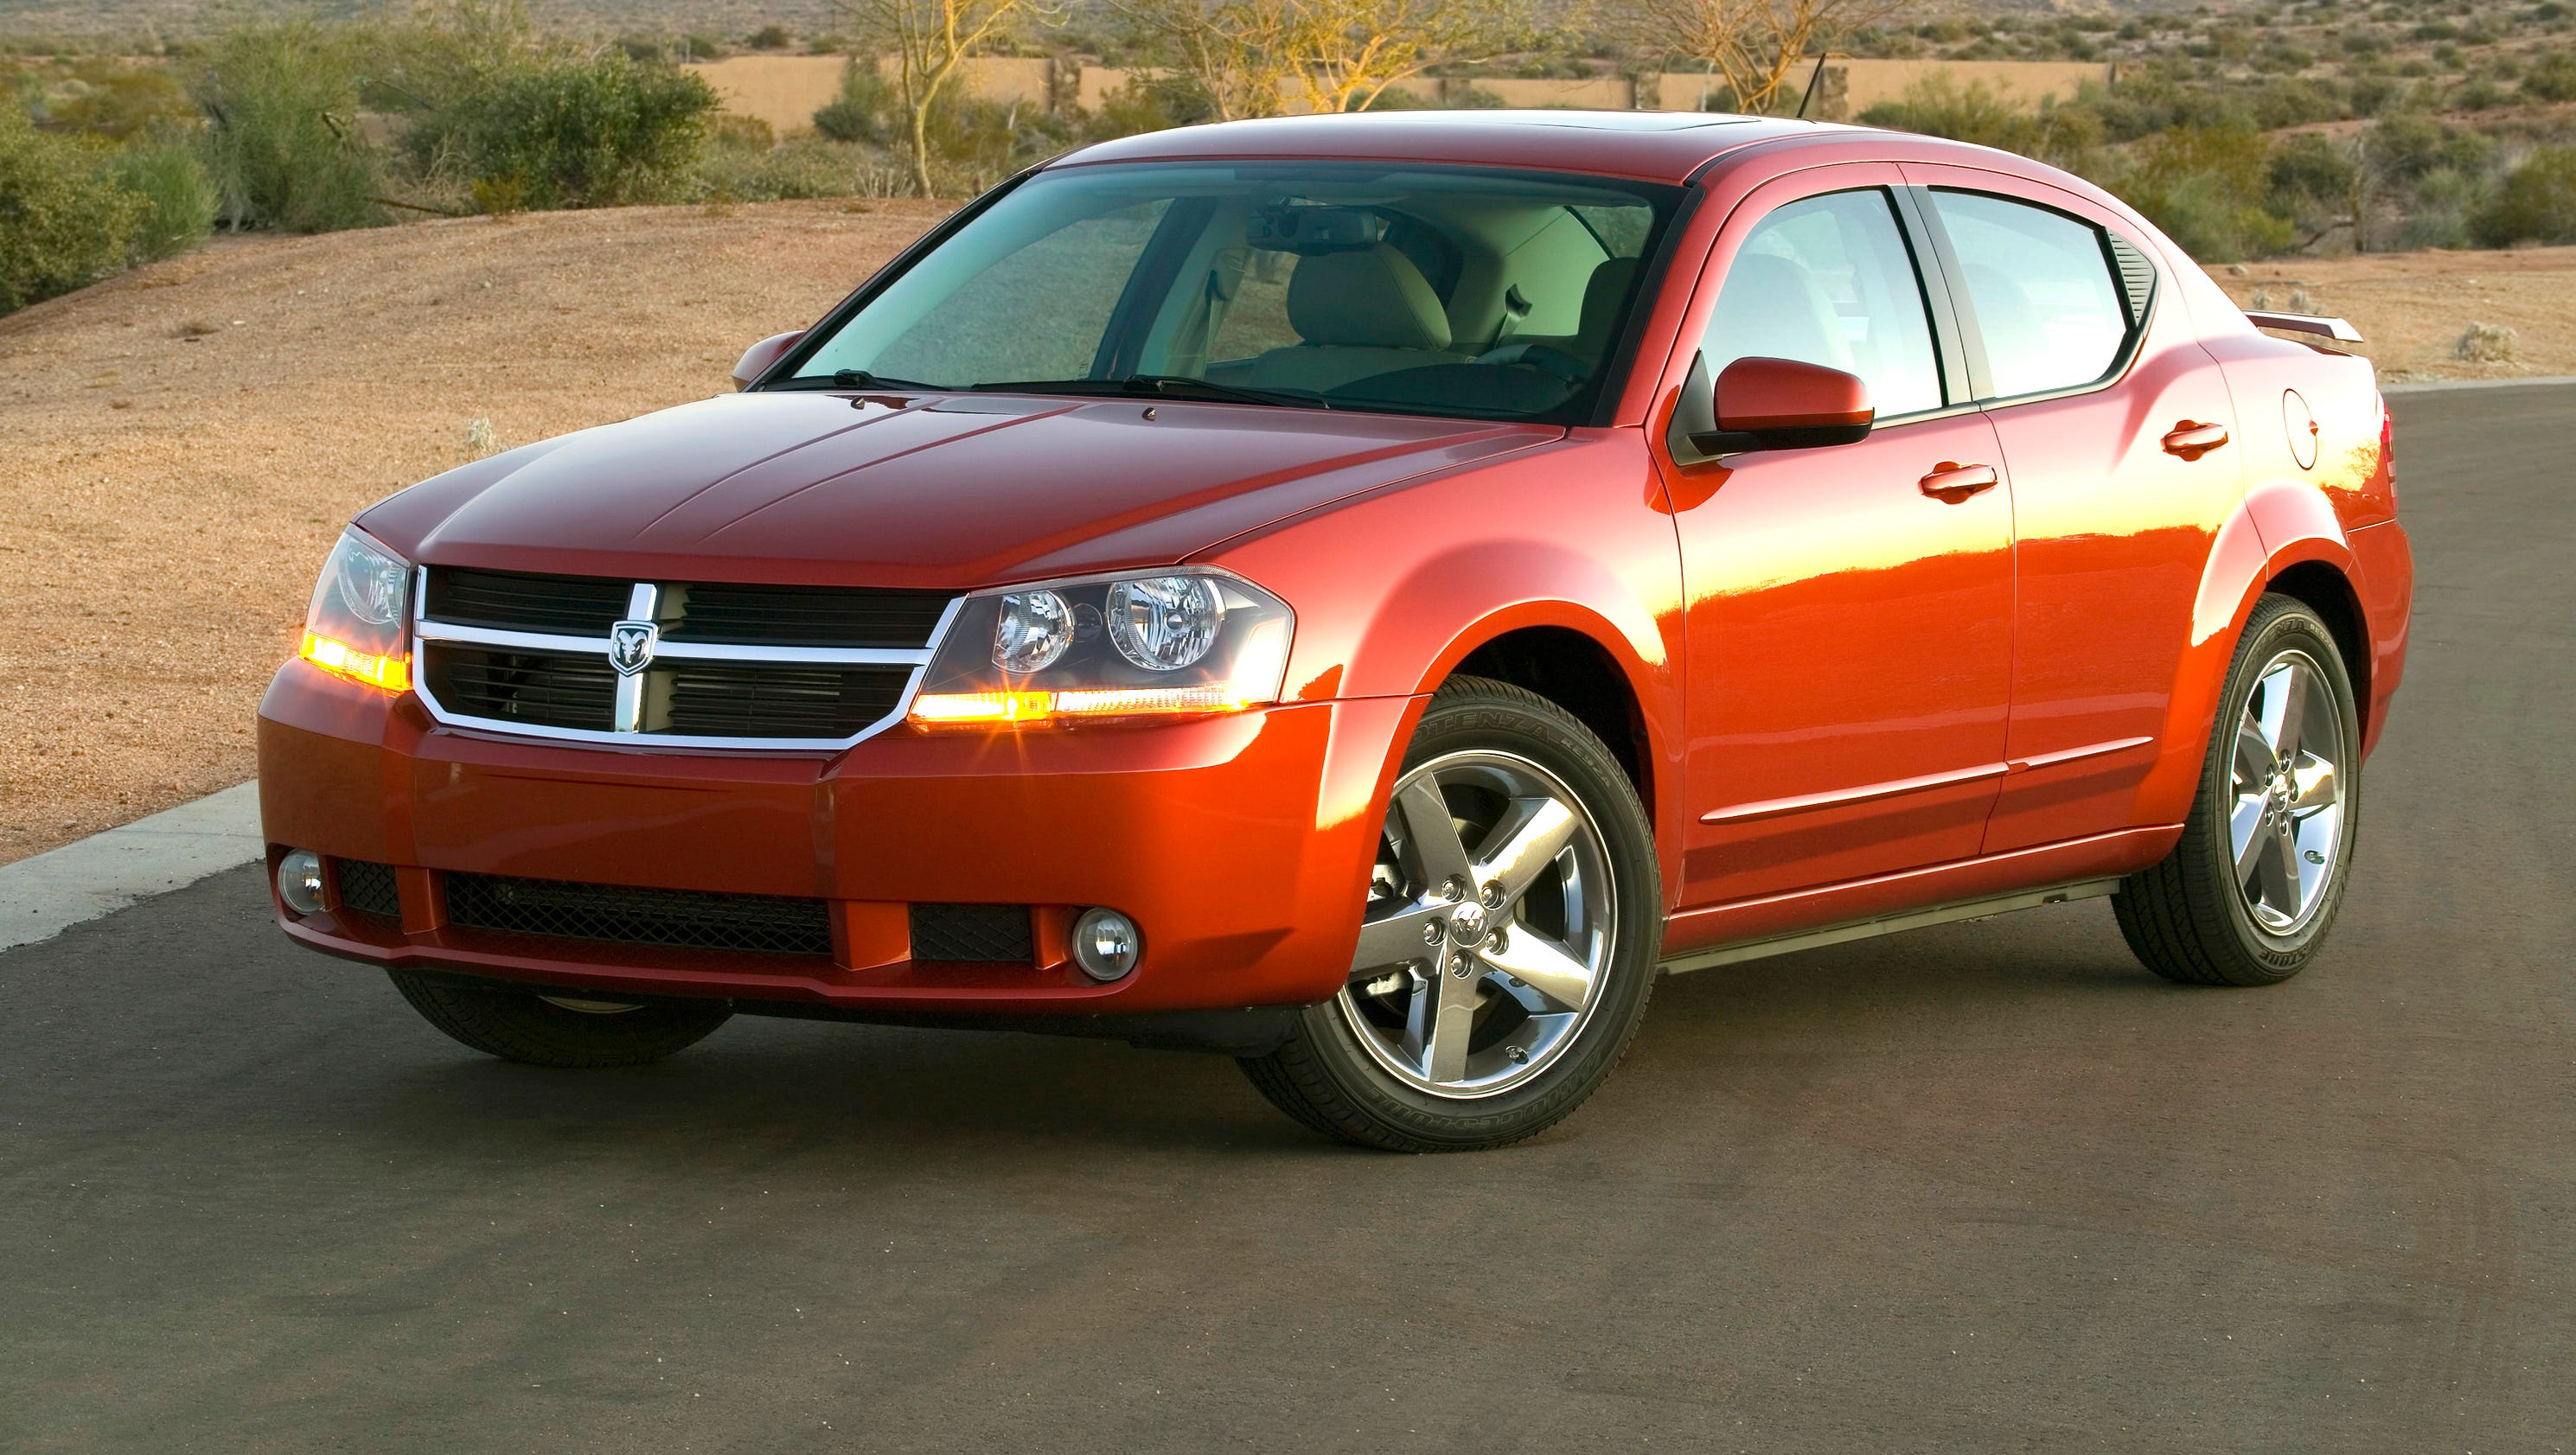 htm bc journey for sxt crew suv s used victoria names dodge v sale in